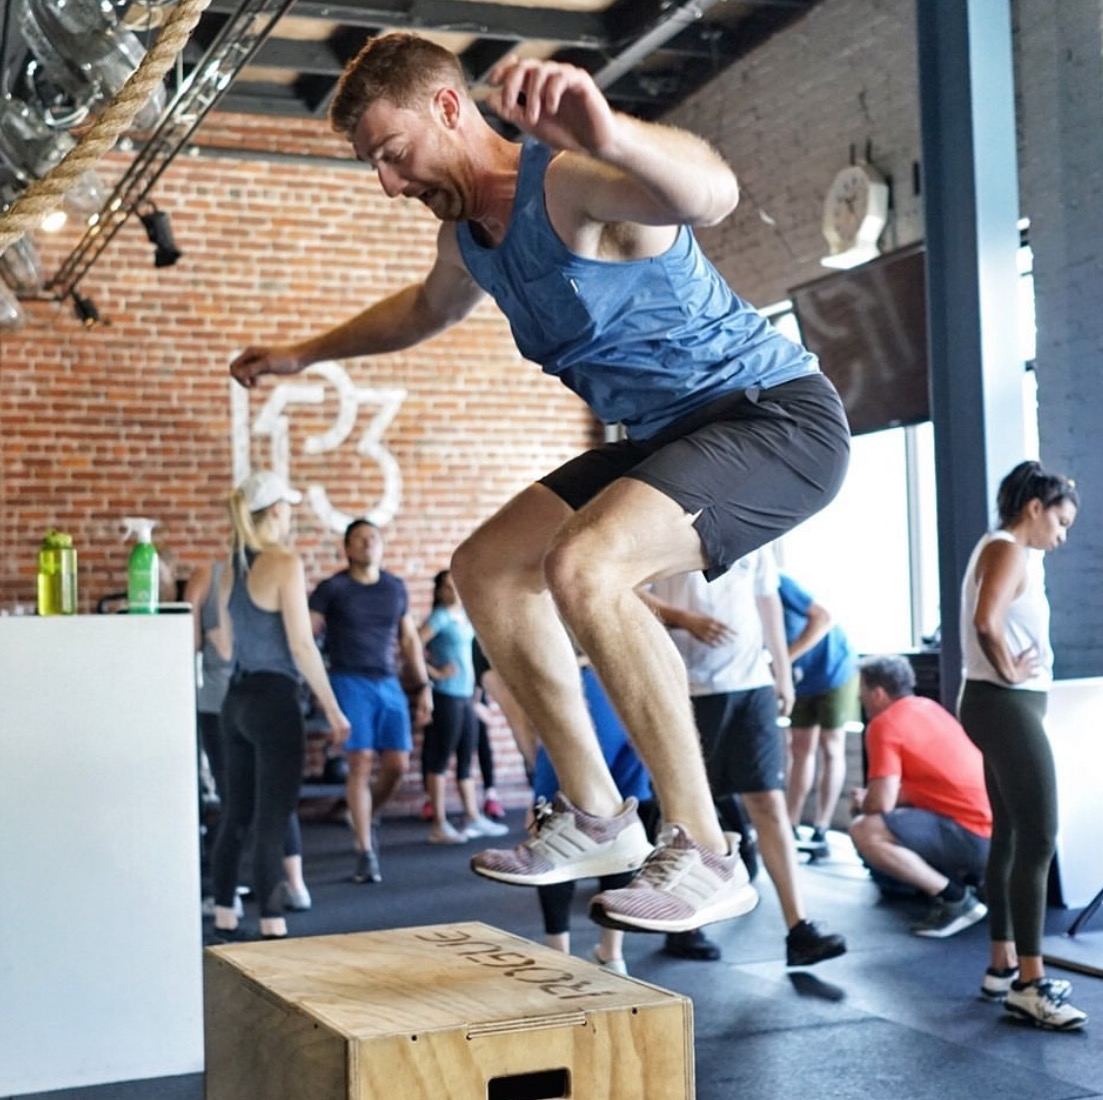 For the Cross-Fit Enthusiast: Project 13 - Though not a CrossFit-affiliate gym, Project 13 gives off the same vibes that working out in a